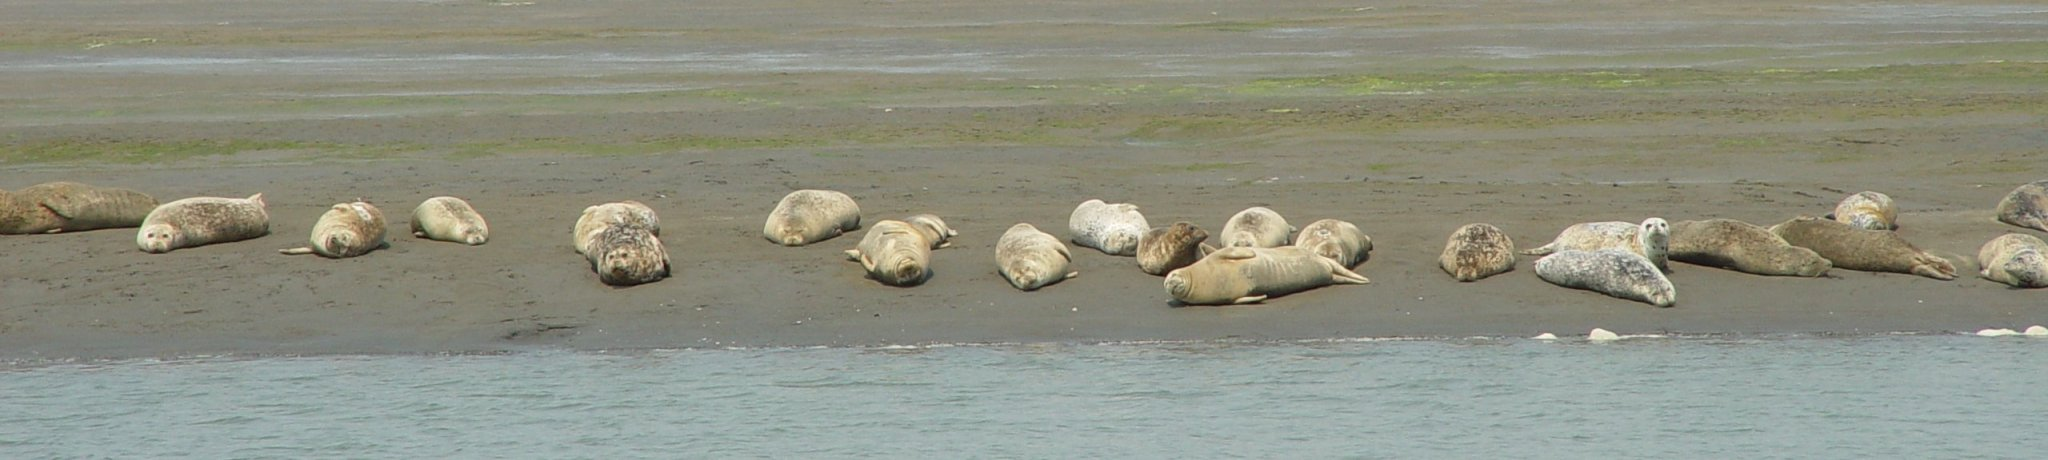 Seals on the beach (Phoca vitulina)